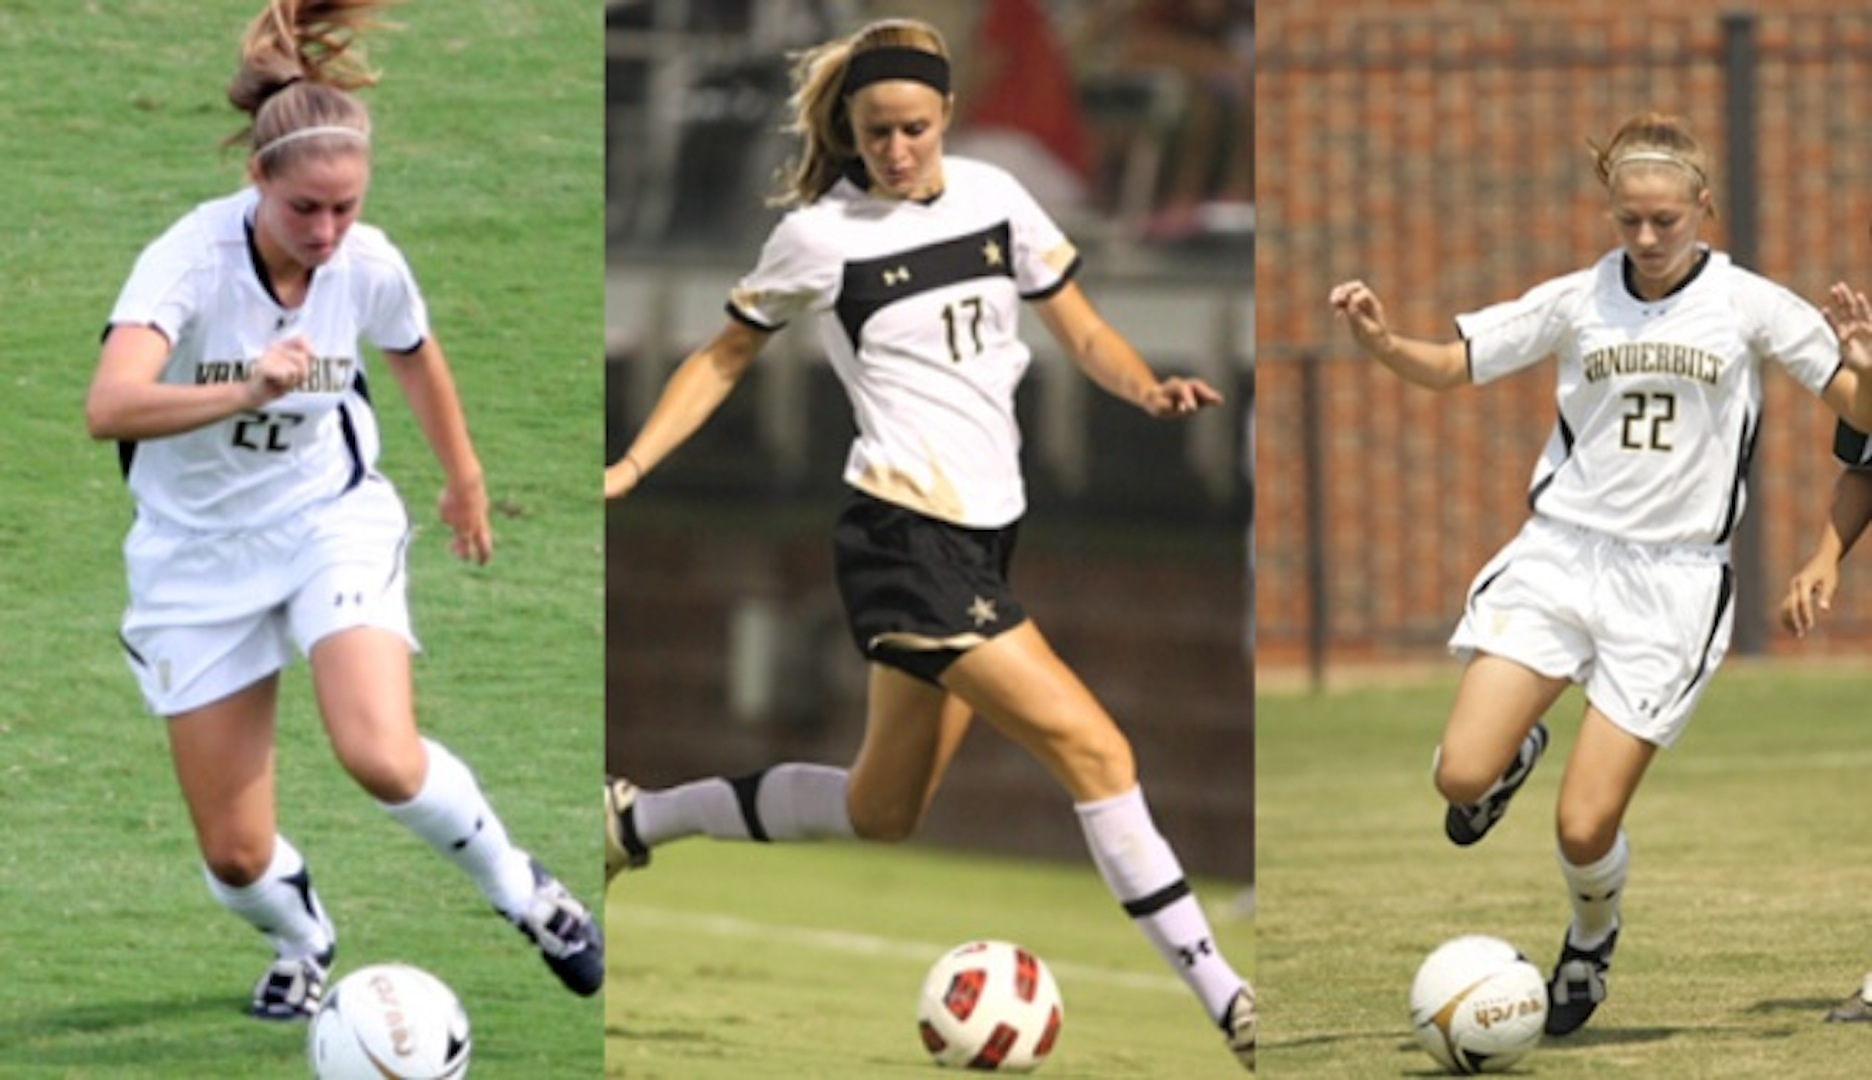 Story of How I, Emily Grant, Played College Soccer